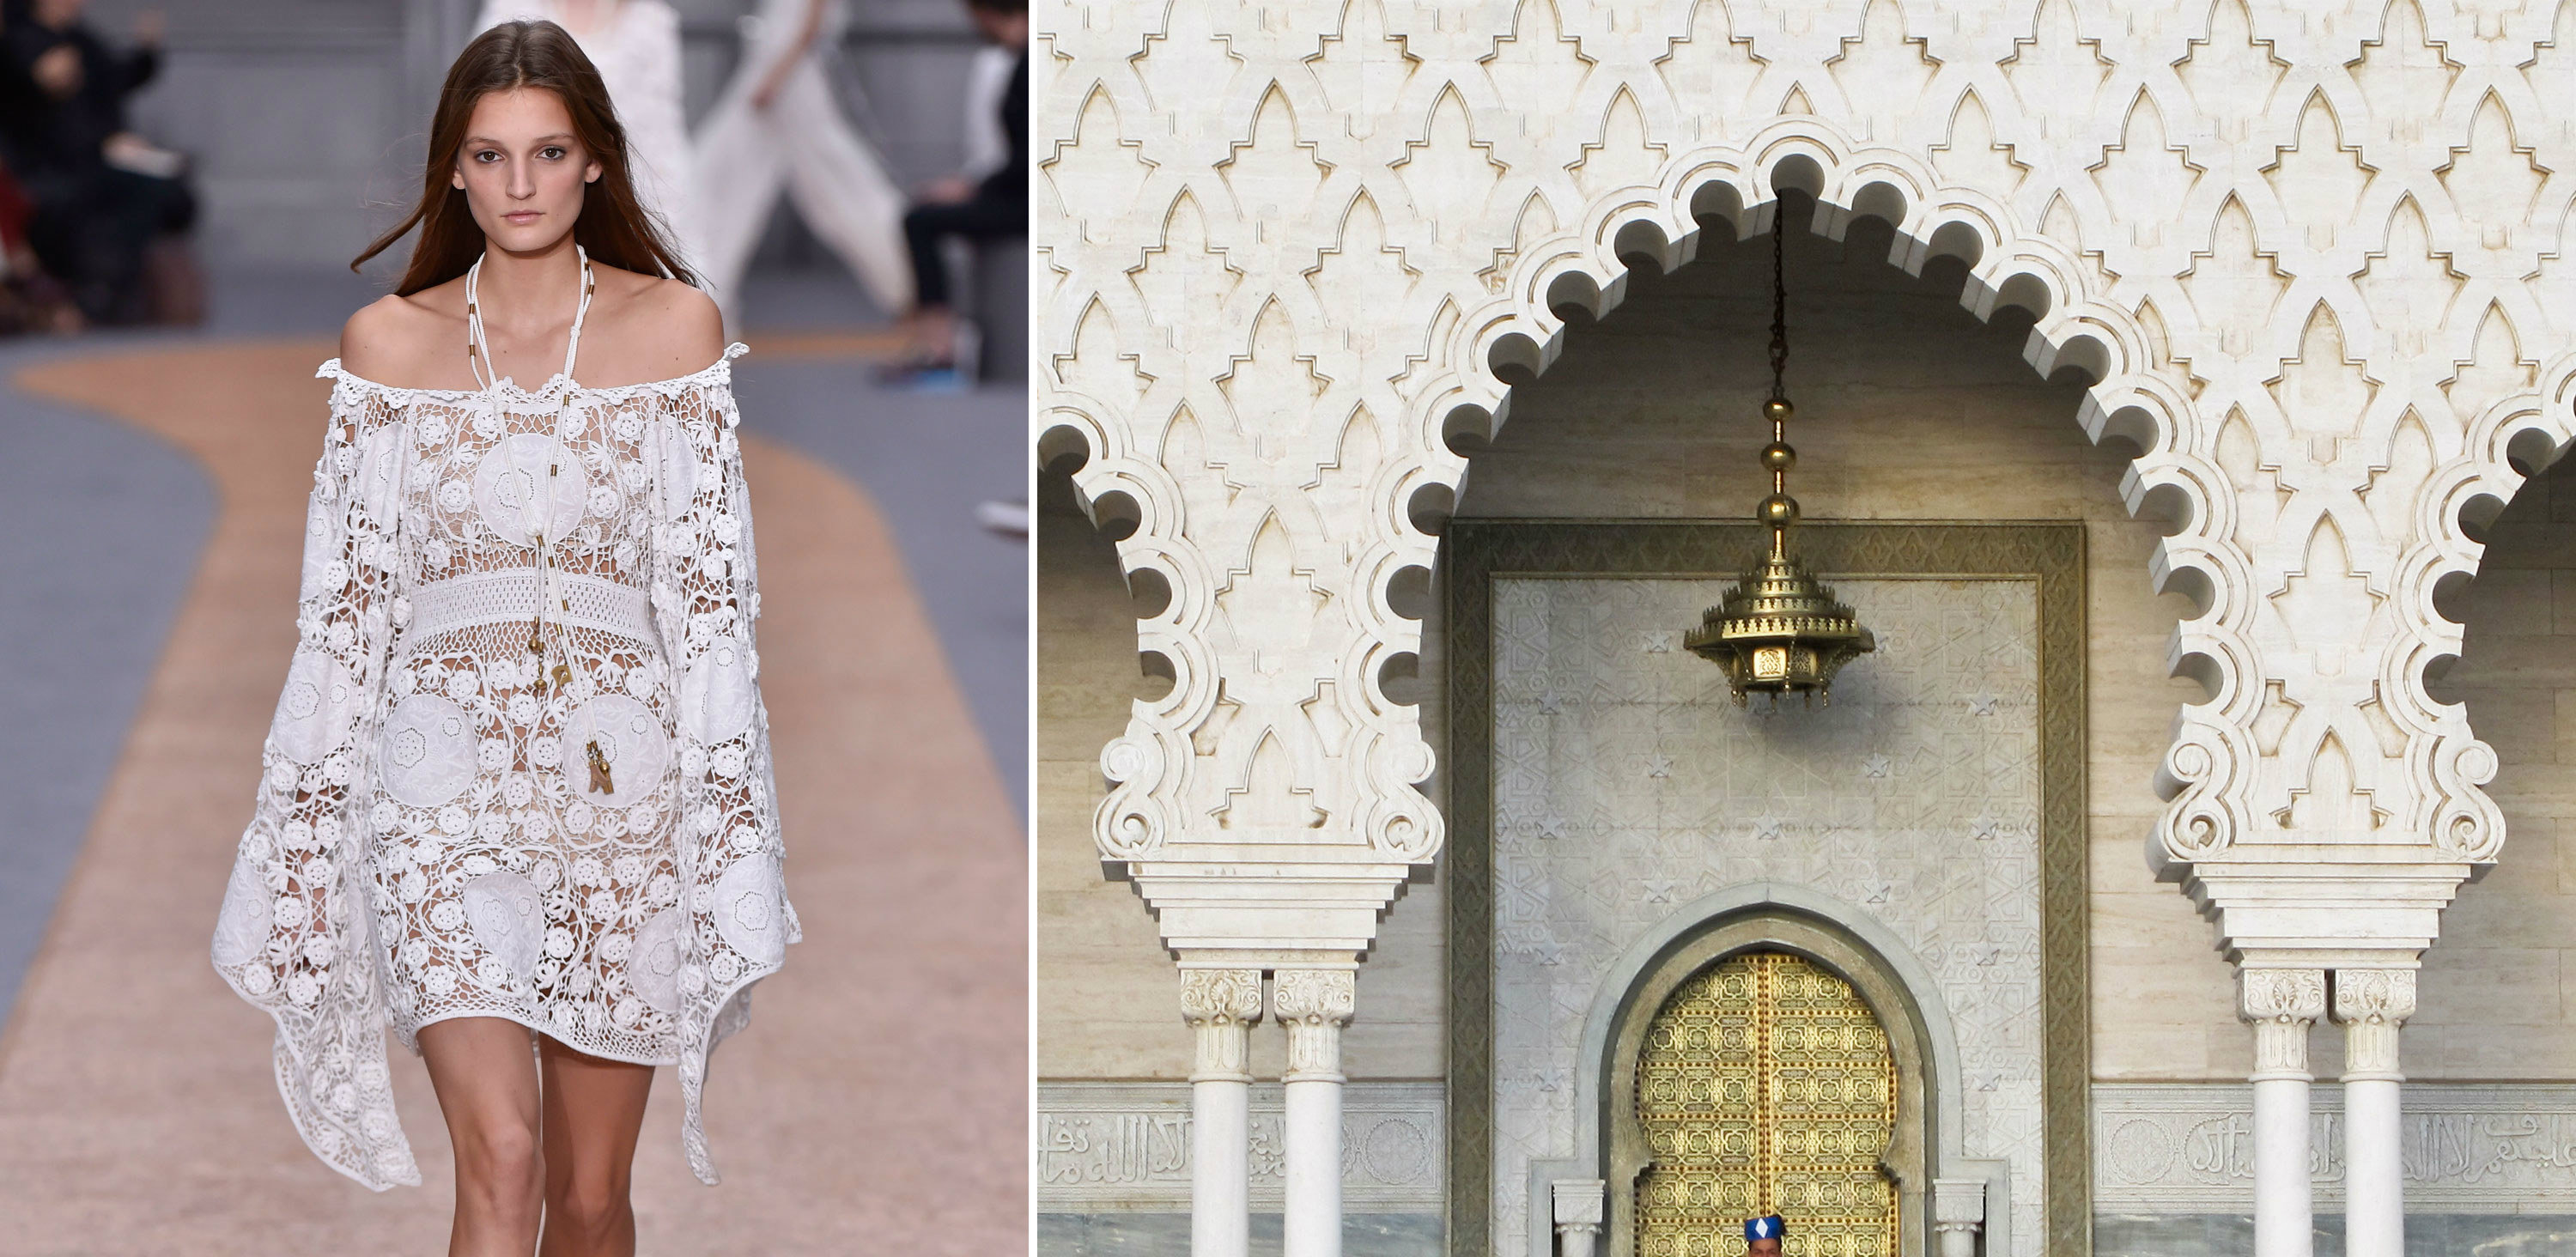 Find what happens when fashion meets architecture Gold 10 Ways to Add Gold to Your Interiors cover1 Gold 10 Ways to Add Gold to Your Interiors cover1